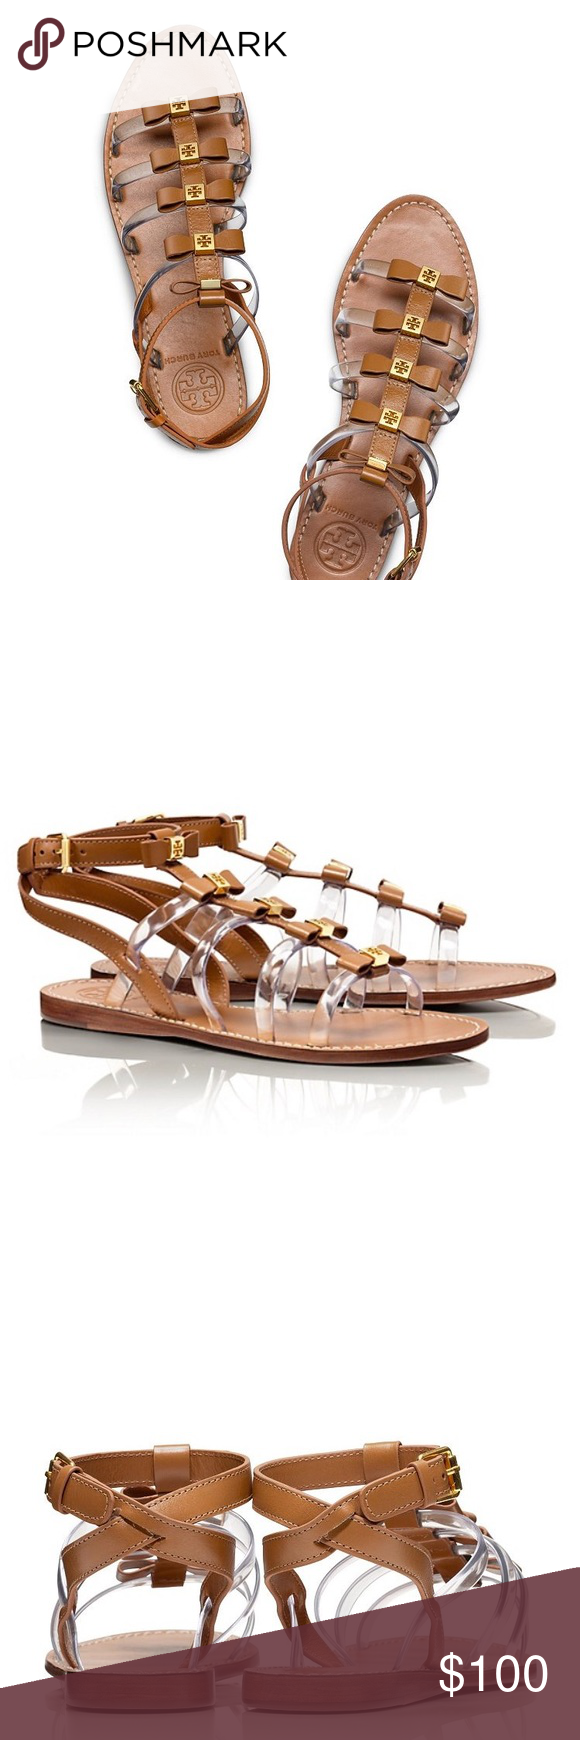 Tory Burch Sandals A classic gladiator silhouette gets unexpected embellishments on our Kira Flat Sandal. The strappy shape features a combination of rich leather and translucent PVC, complete with dainty gold logo-accented bows. A flattering, wear-with-all style, it takes the guesswork out of warm-weather accessorizing. Tory Burch Shoes Sandals